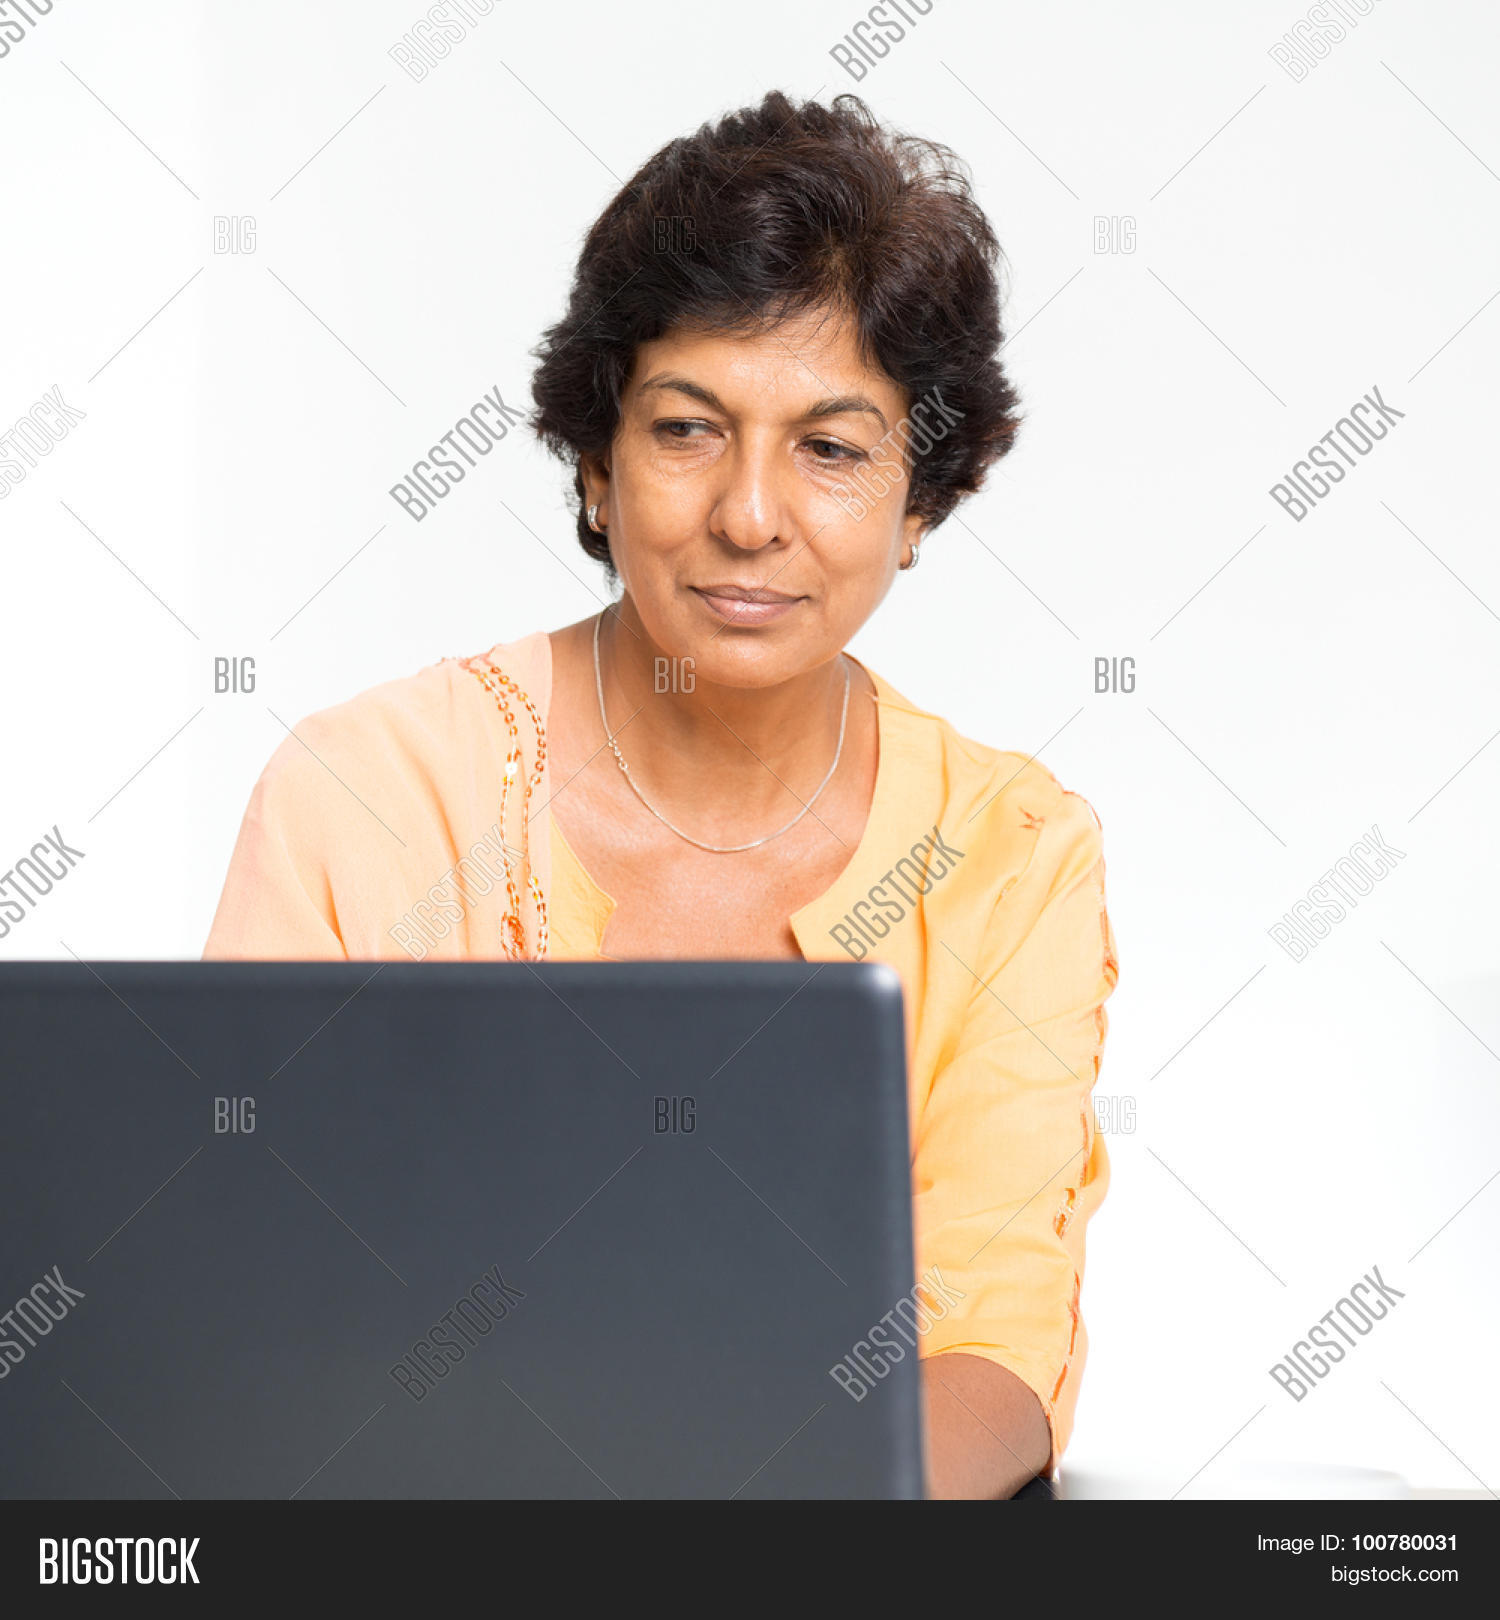 Older People Modern Image Photo Free Trial Bigstock